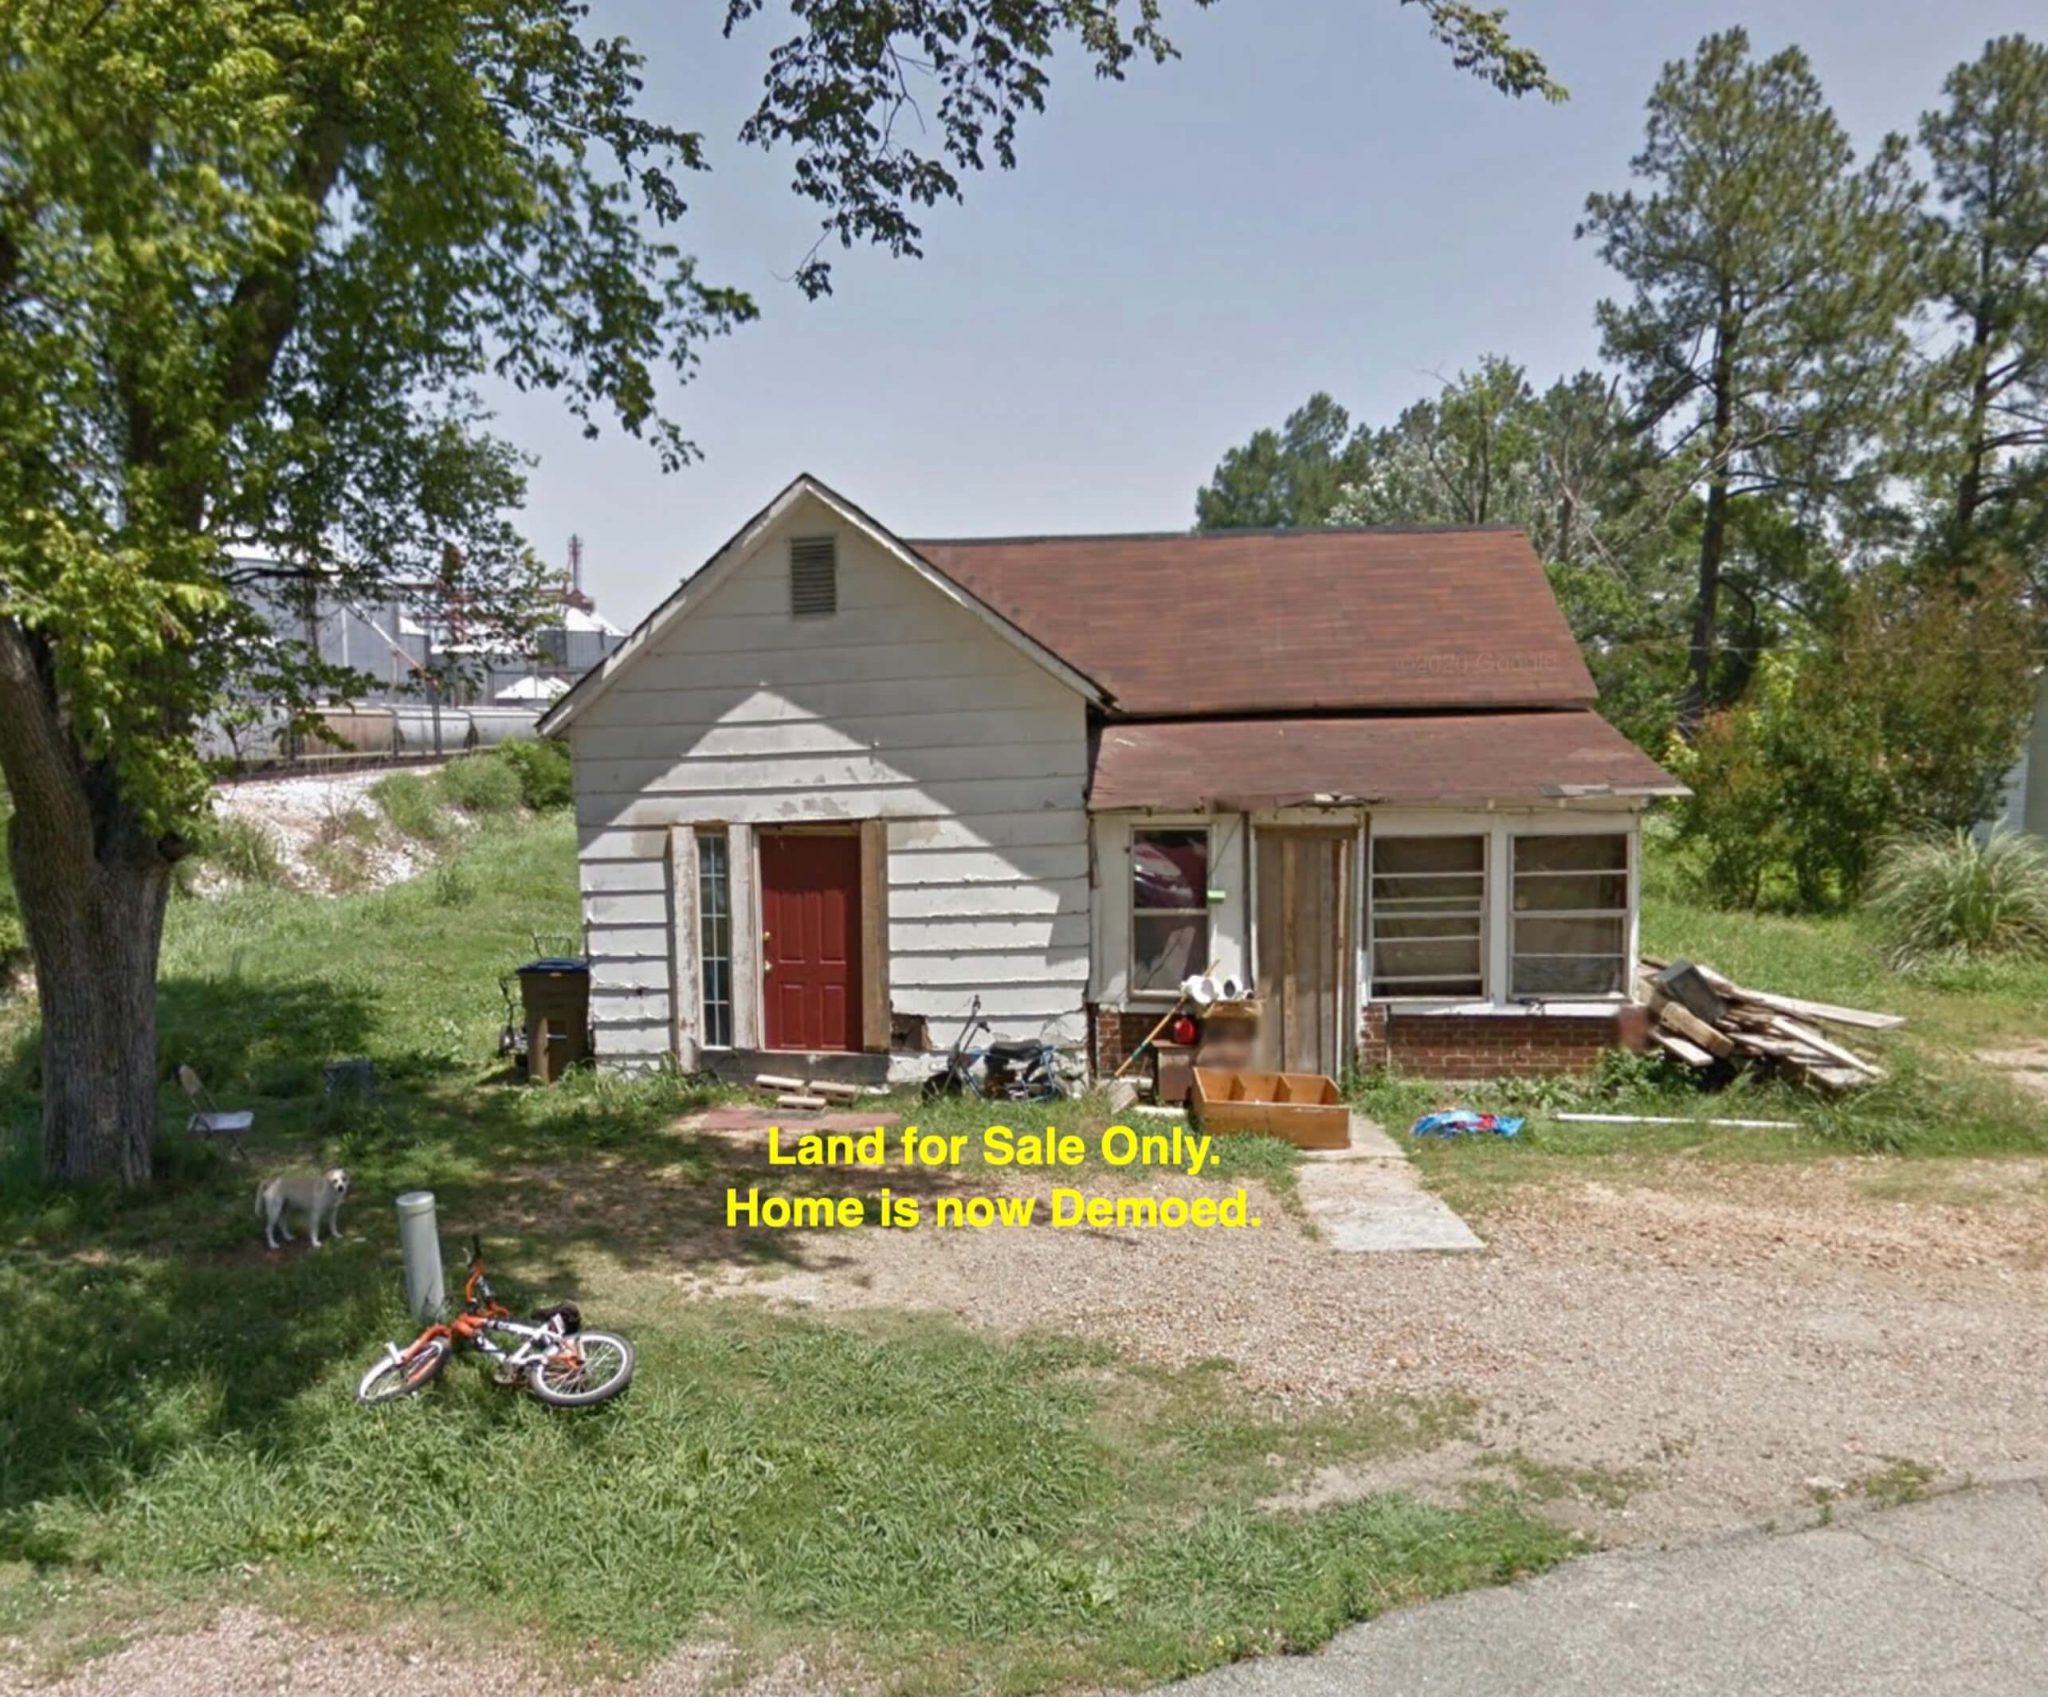 Bare Land Sale- Vacant. Not Used, Bare Land Sale- Empty, Bare, Vacant